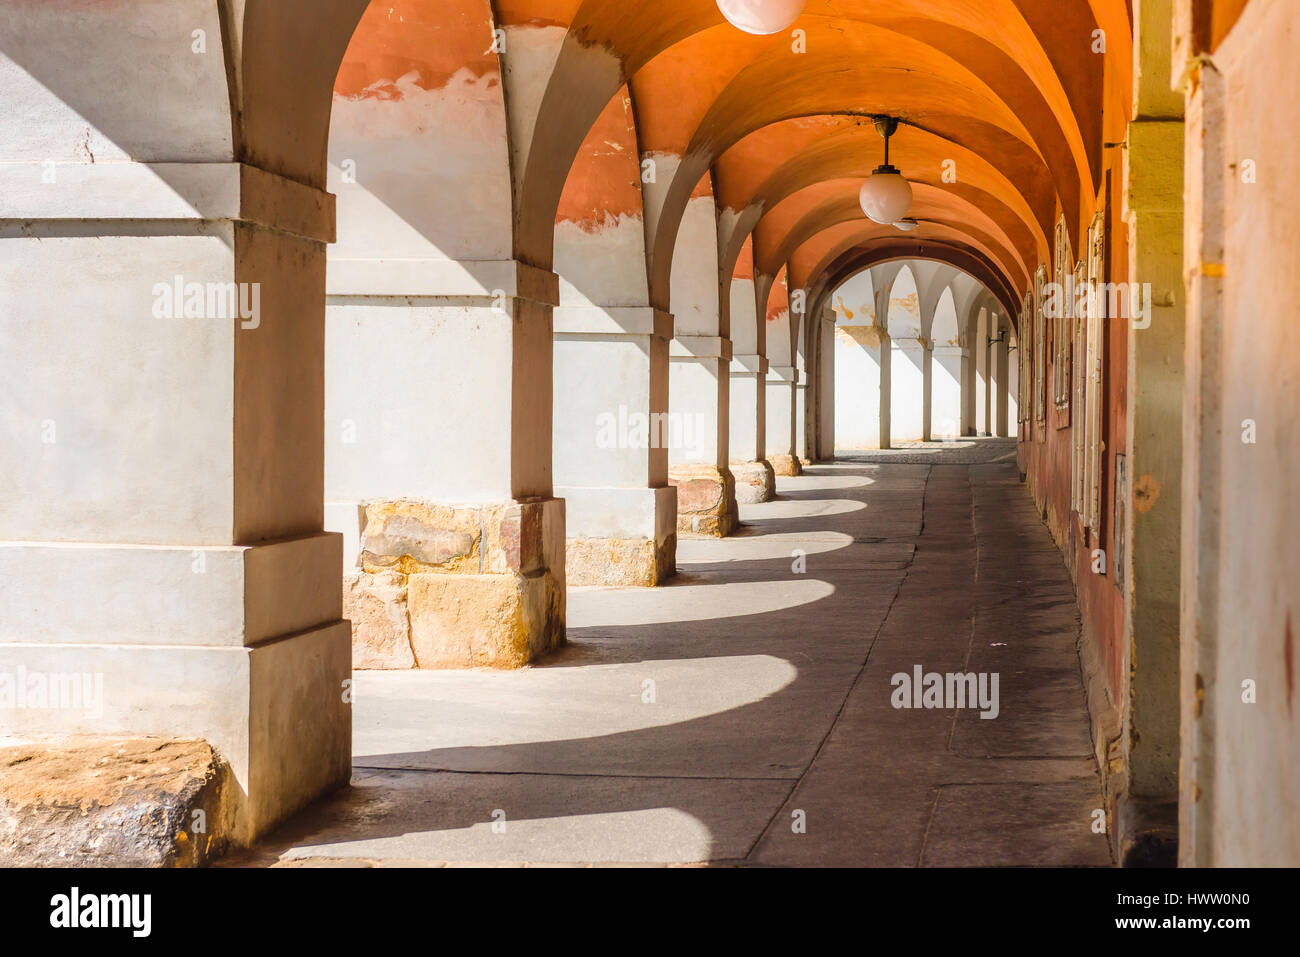 Prague old town arcade, an arcade - or portico - in the historic Hradcany district of Prague, Czech Republic. - Stock Image